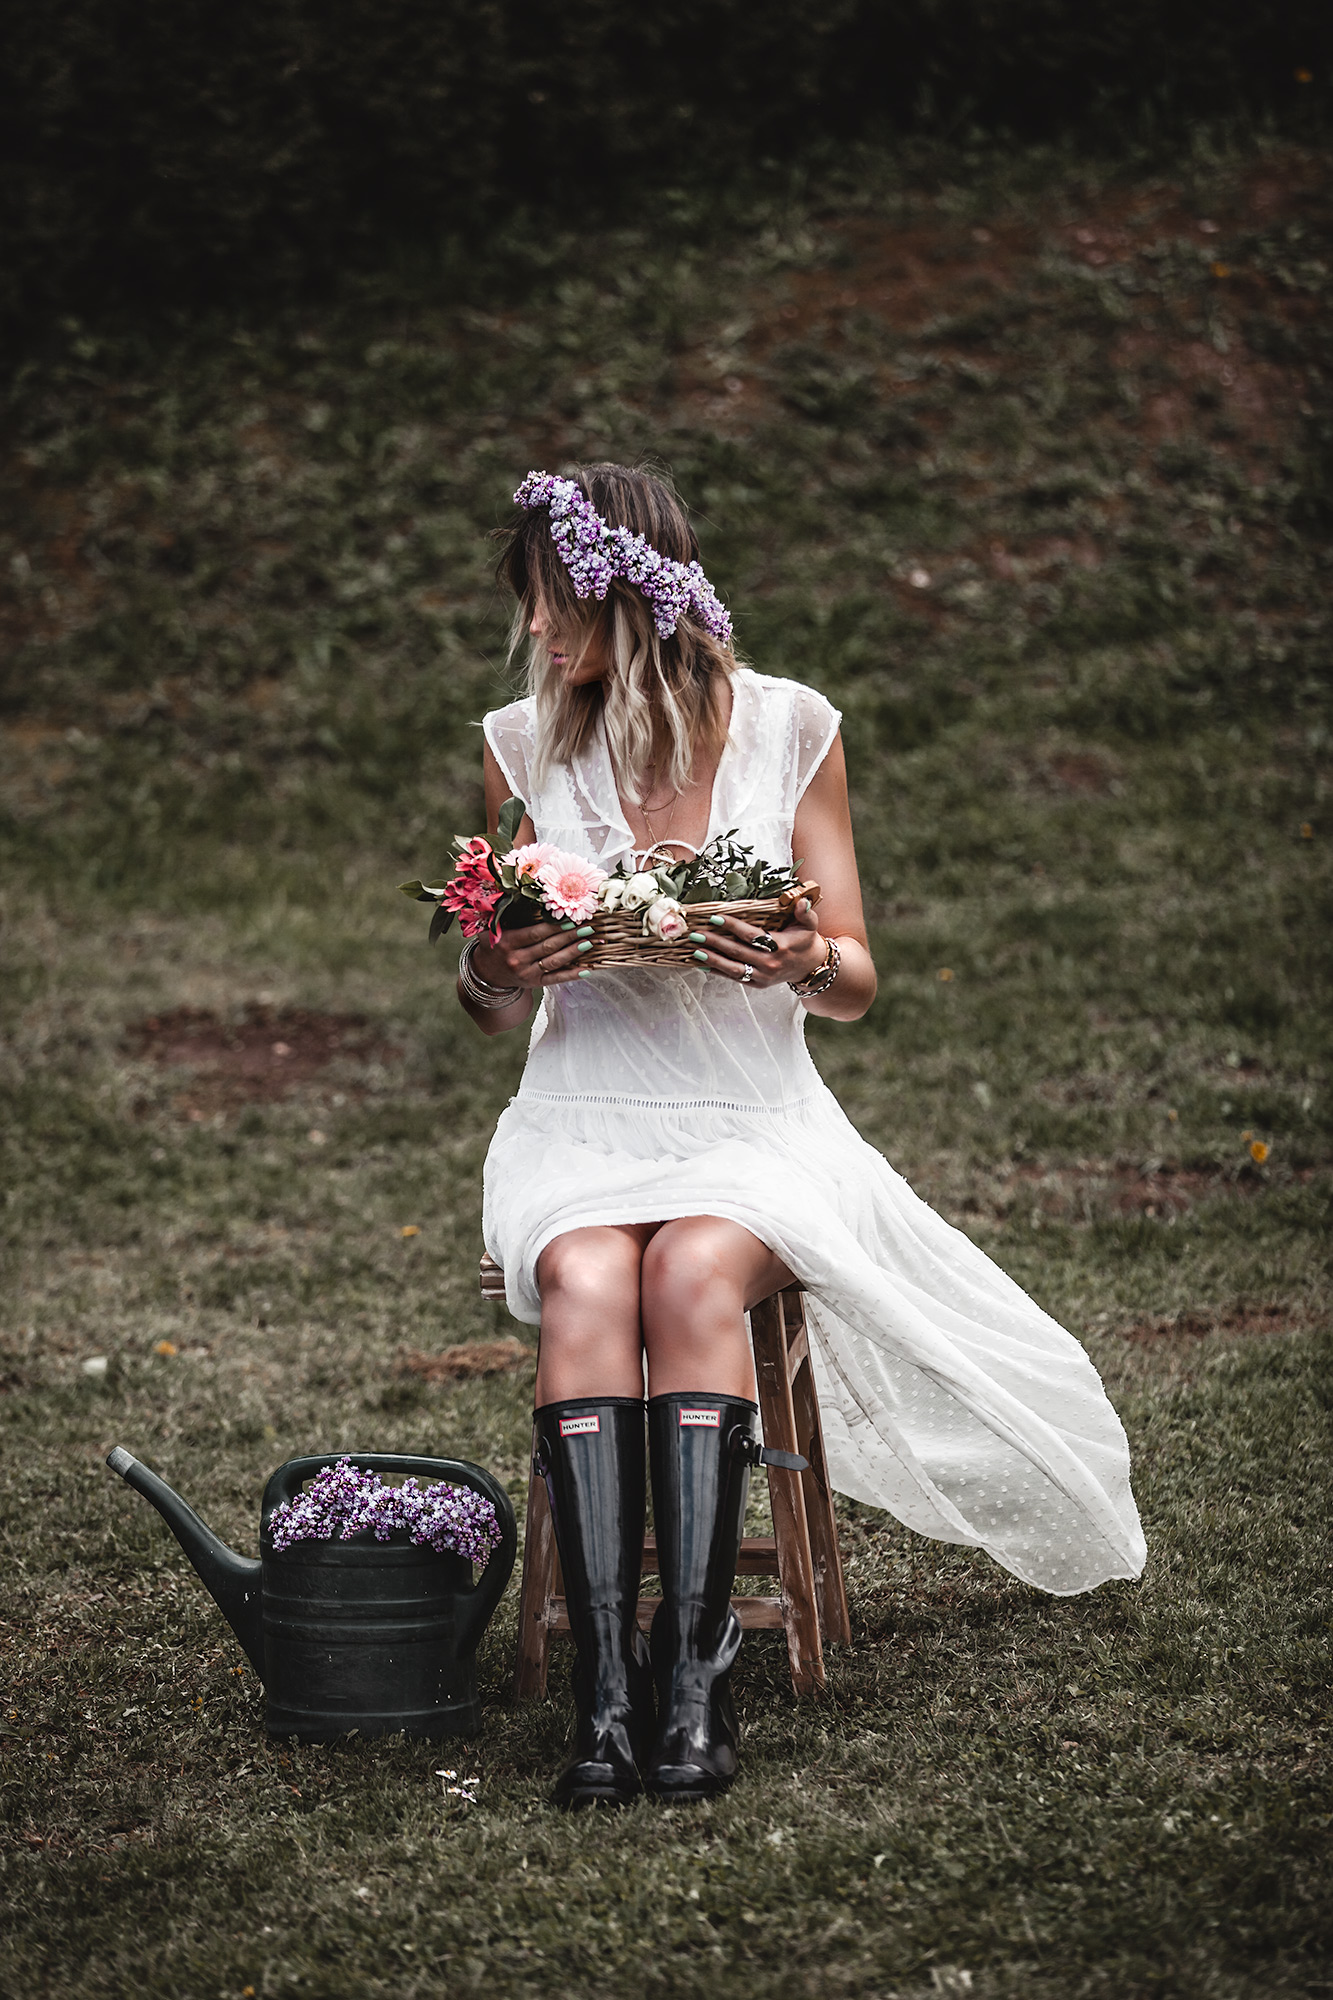 The time of white dresses is officially here. Keep reading to have a taste of the most beautiful voluminous, romantic, and broderie white dresses for spring and summer 2020, at super affordable prices, many of which are only under 30 €. White dress, Hunter Boots, Lilac Crown, Flowers, May Day.